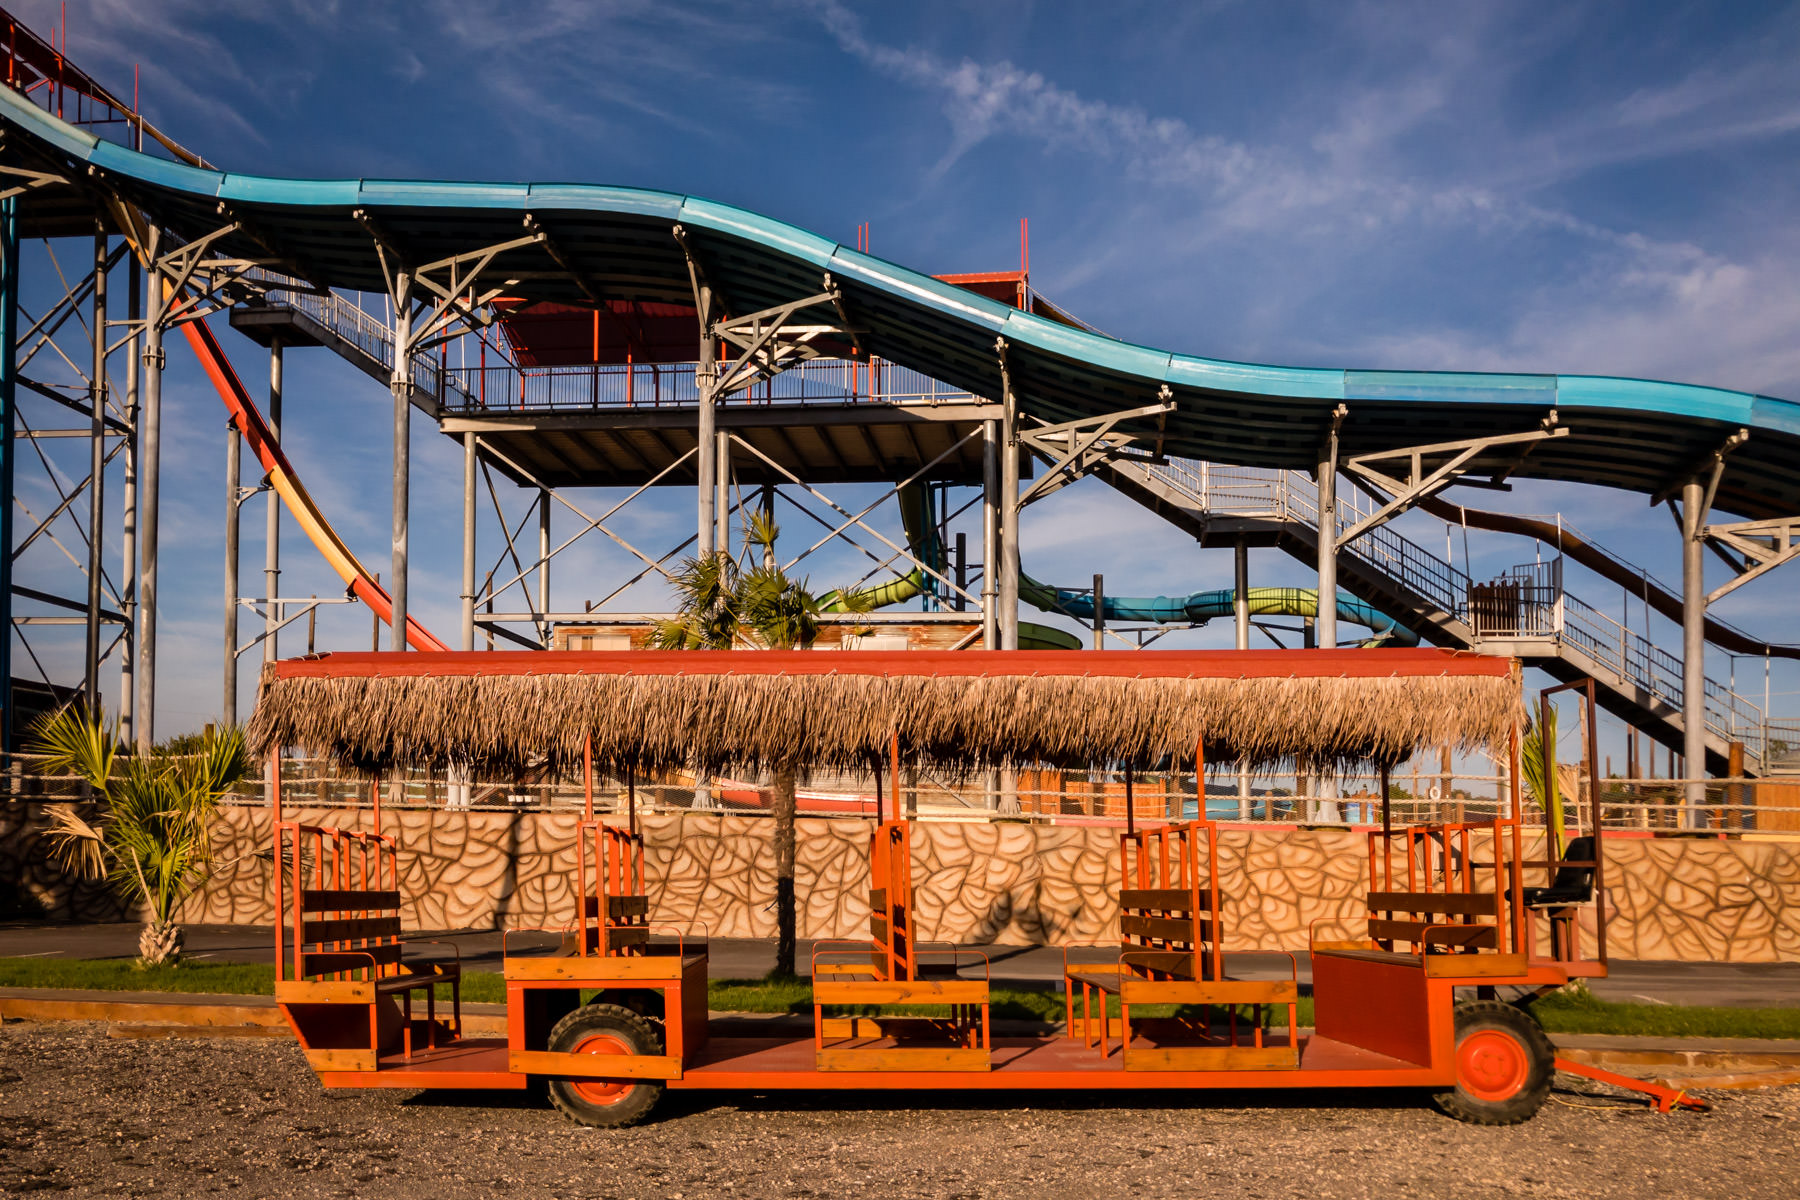 A tram's wagon sits outside the closed-for-the-year Pirates' Cove Waterpark in Burleson, Texas.